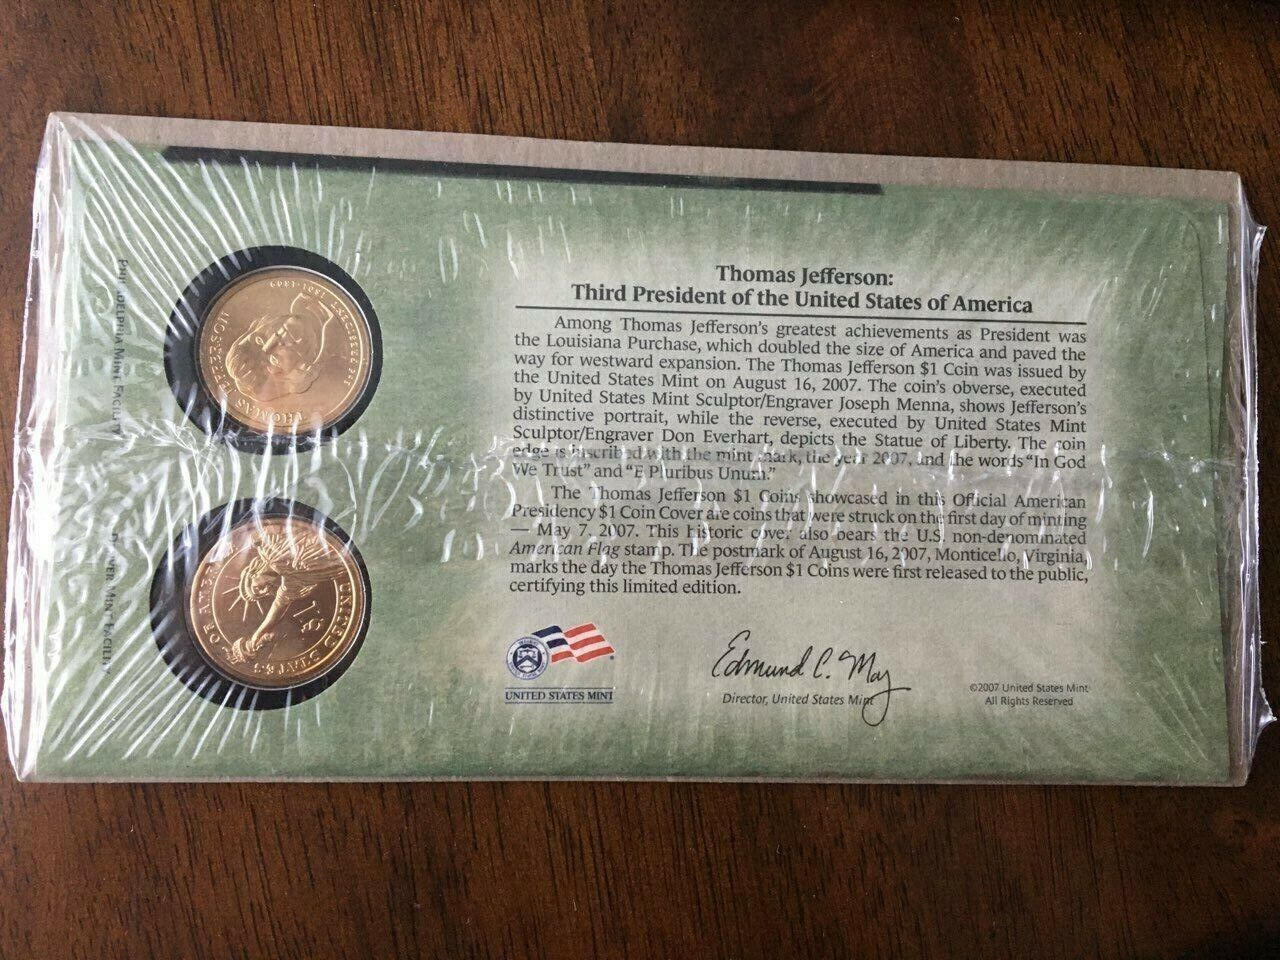 BNIP UNITED STATES MINT FIRST DAY COVER 2007 THOMAS JEFFERSON DOLLAR COIN SET - $15.00